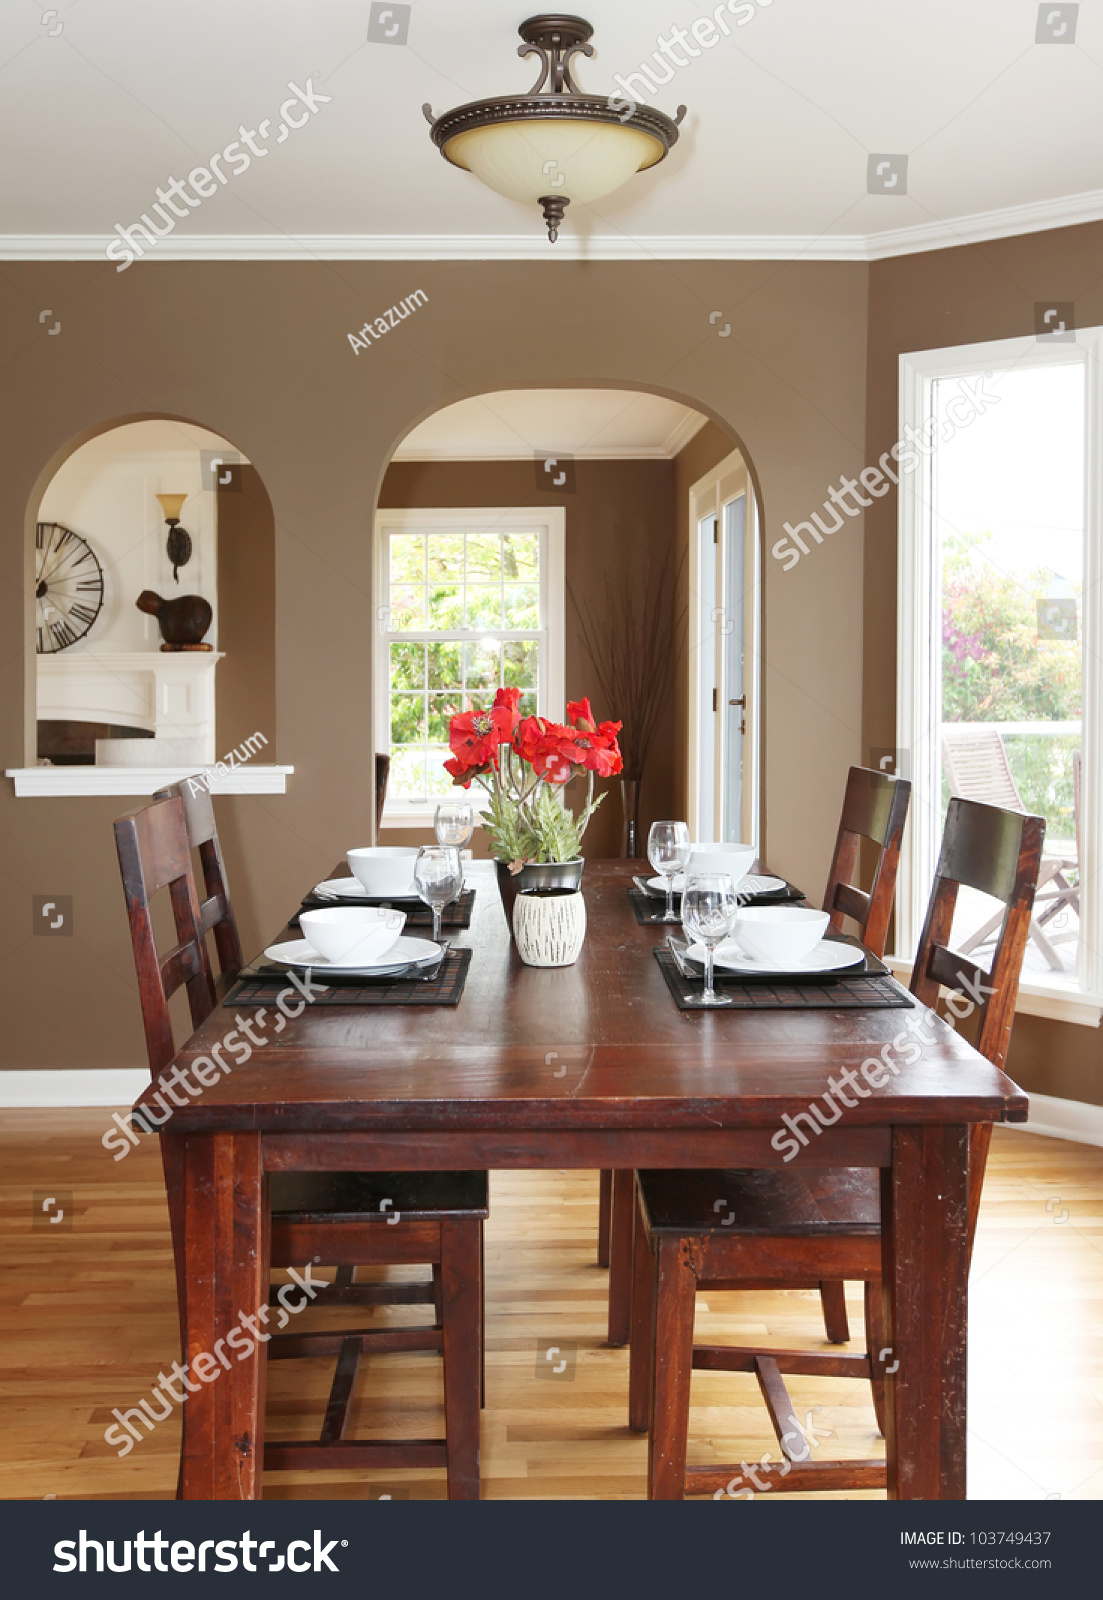 Dining Room With Brown Walls And Wood Table In The Luxury